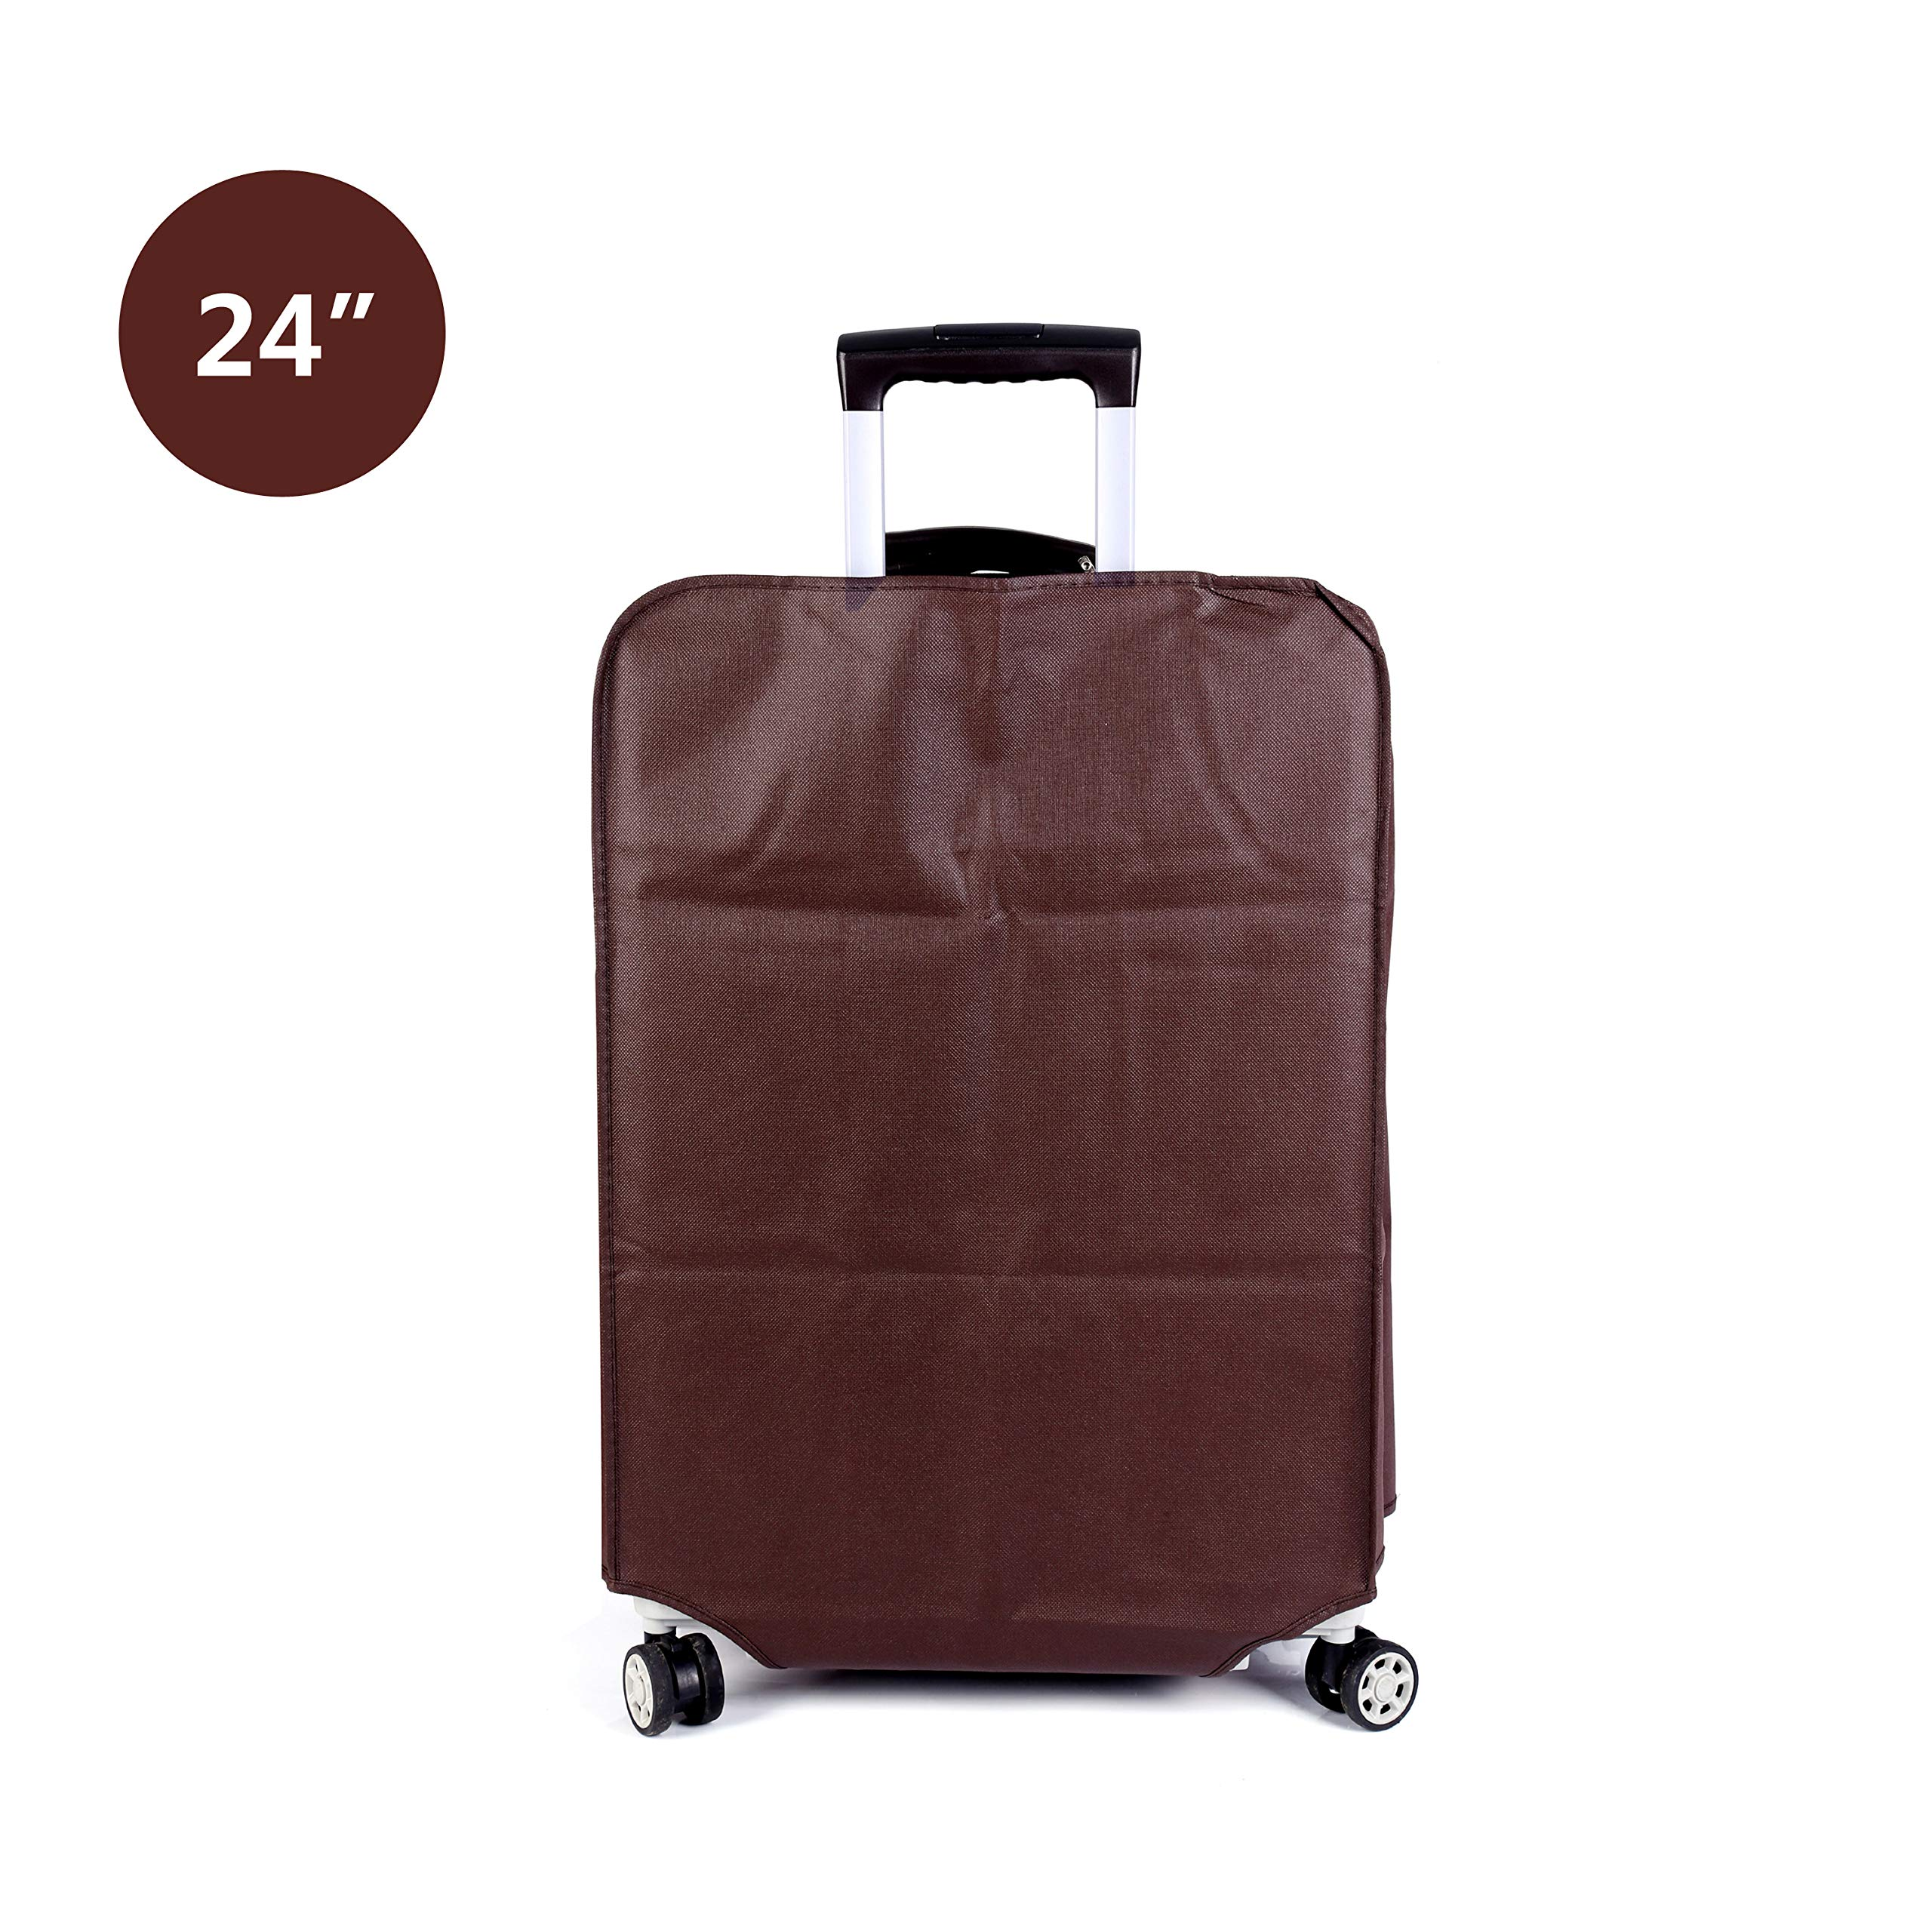 Non-elastic Suitcase Cover Waterproof Luggage Cover,3 Colors,Fits 24 Inch,Brown by CXGIAE (Image #3)